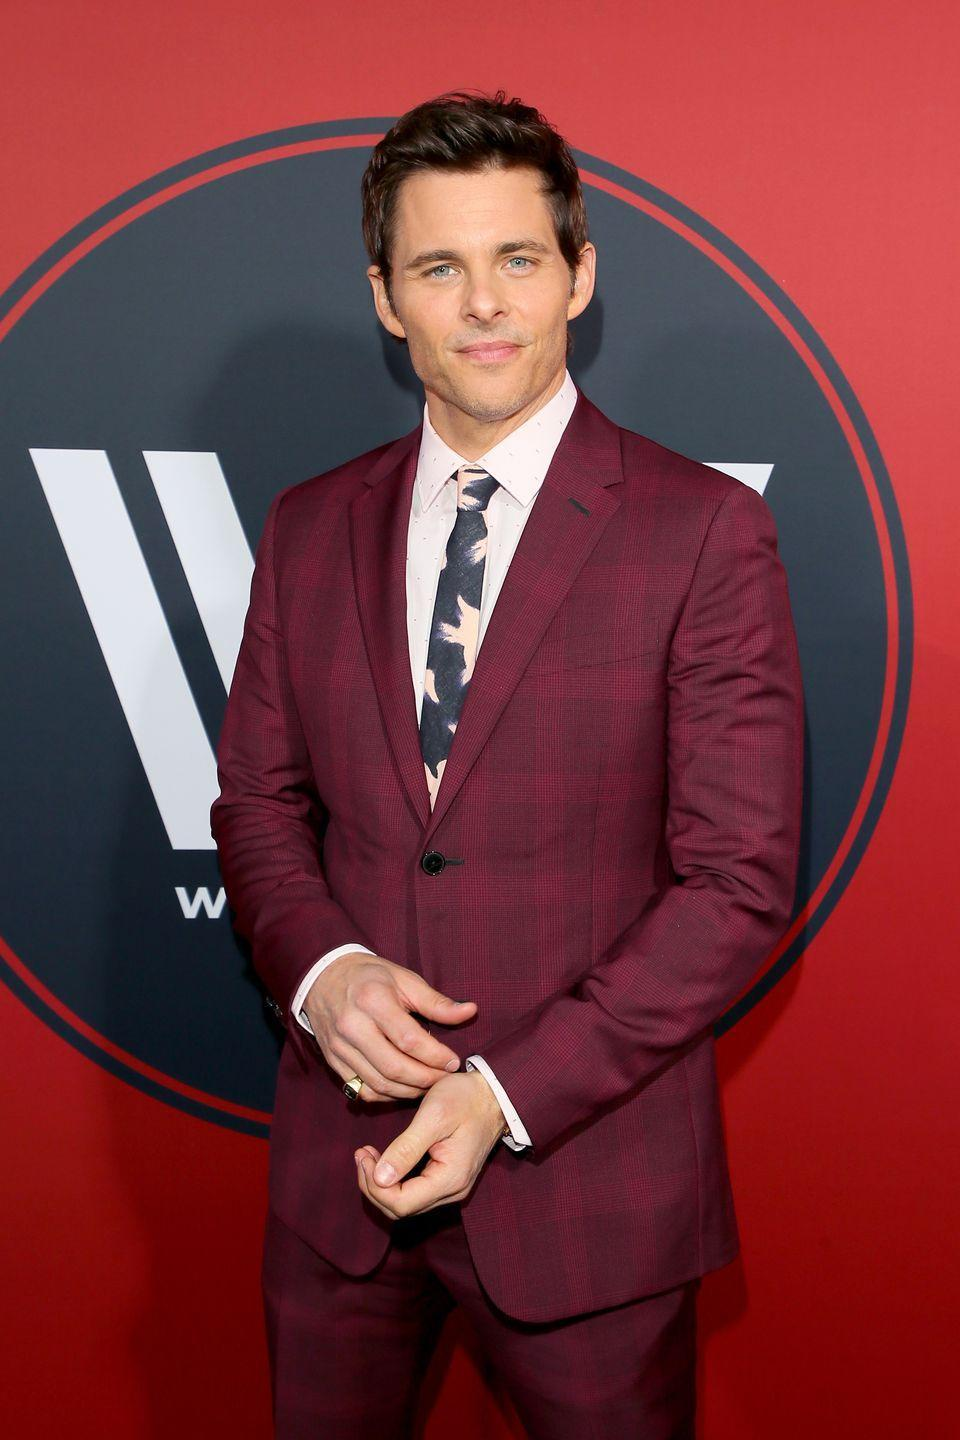 """<p>James Marsden was just your average fraternity brother, until he became a model and A-list actor. Marsden attended Oklahoma State University, where he <a href=""""https://www.theodysseyonline.com/20-famous-men-who-fraternities"""" rel=""""nofollow noopener"""" target=""""_blank"""" data-ylk=""""slk:pledged Delta Tau Delta"""" class=""""link rapid-noclick-resp"""">pledged Delta Tau Delta</a>. </p>"""